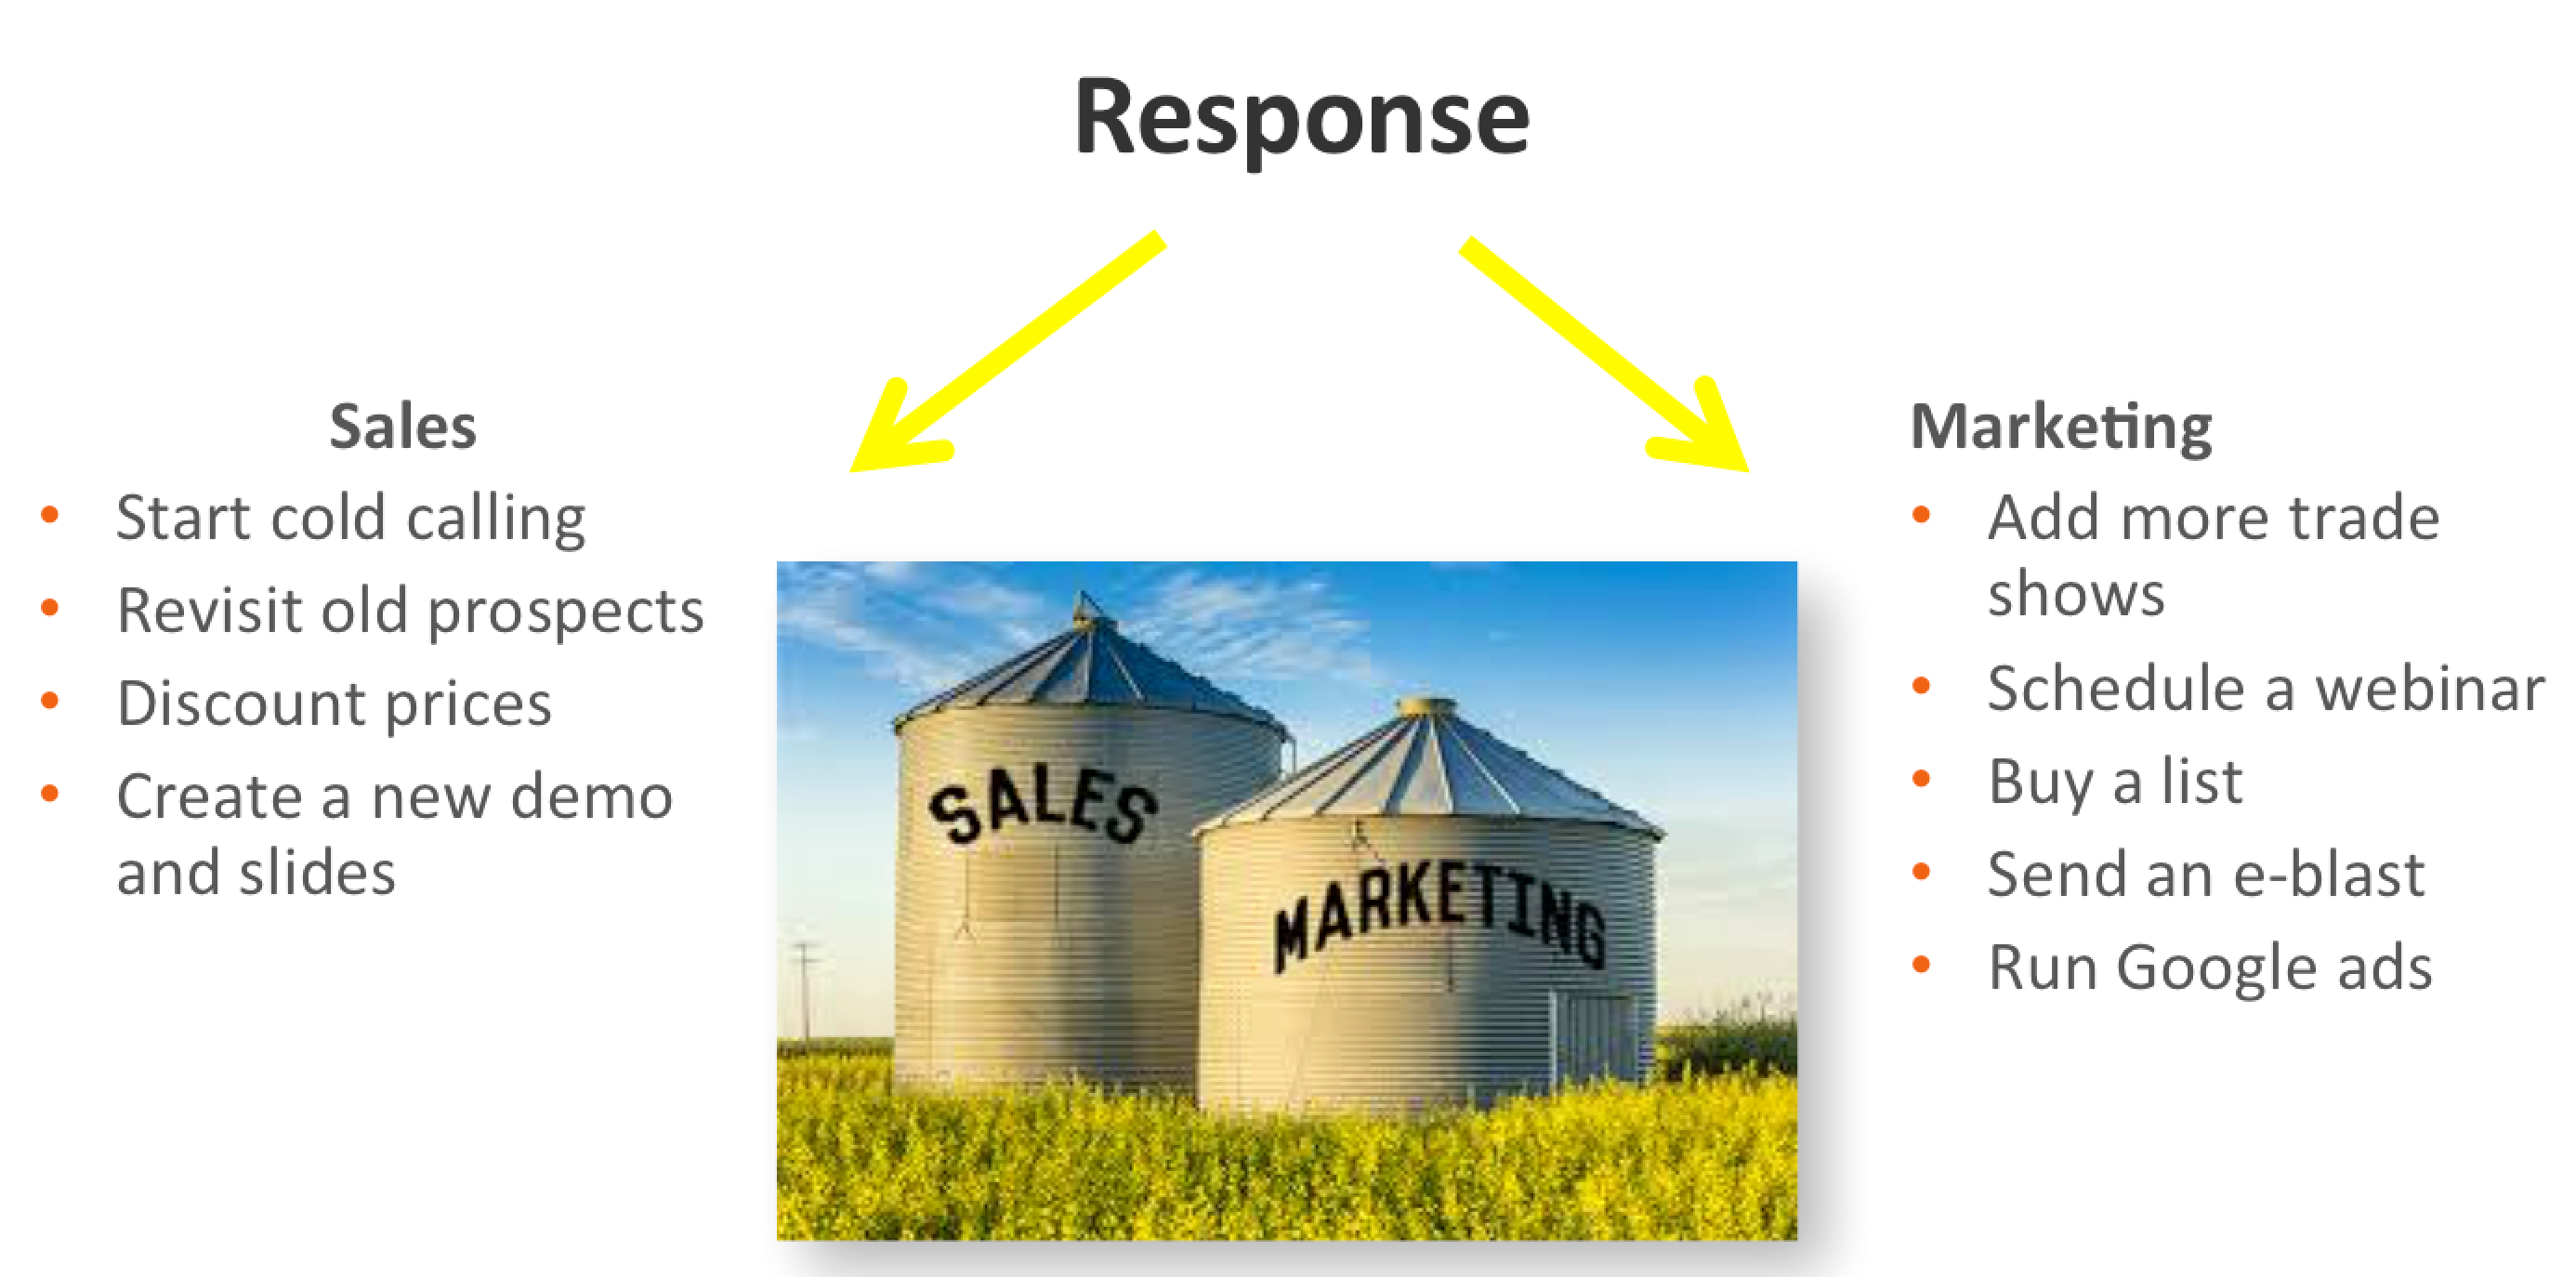 Pic 1 - Marketing and Sales Silos